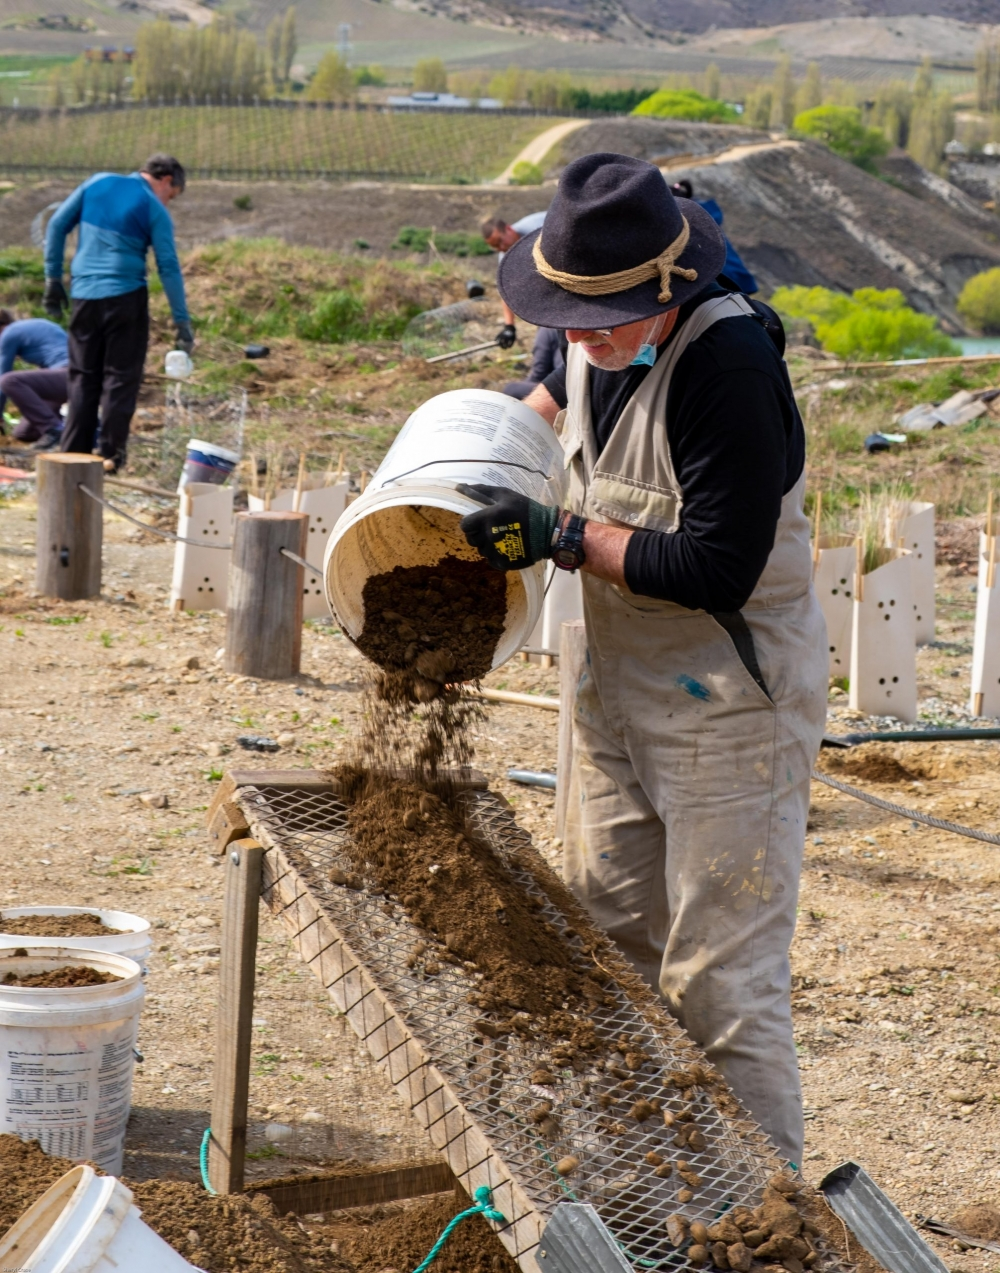 Sifting_dirt_community_planting_native_trees_restoration